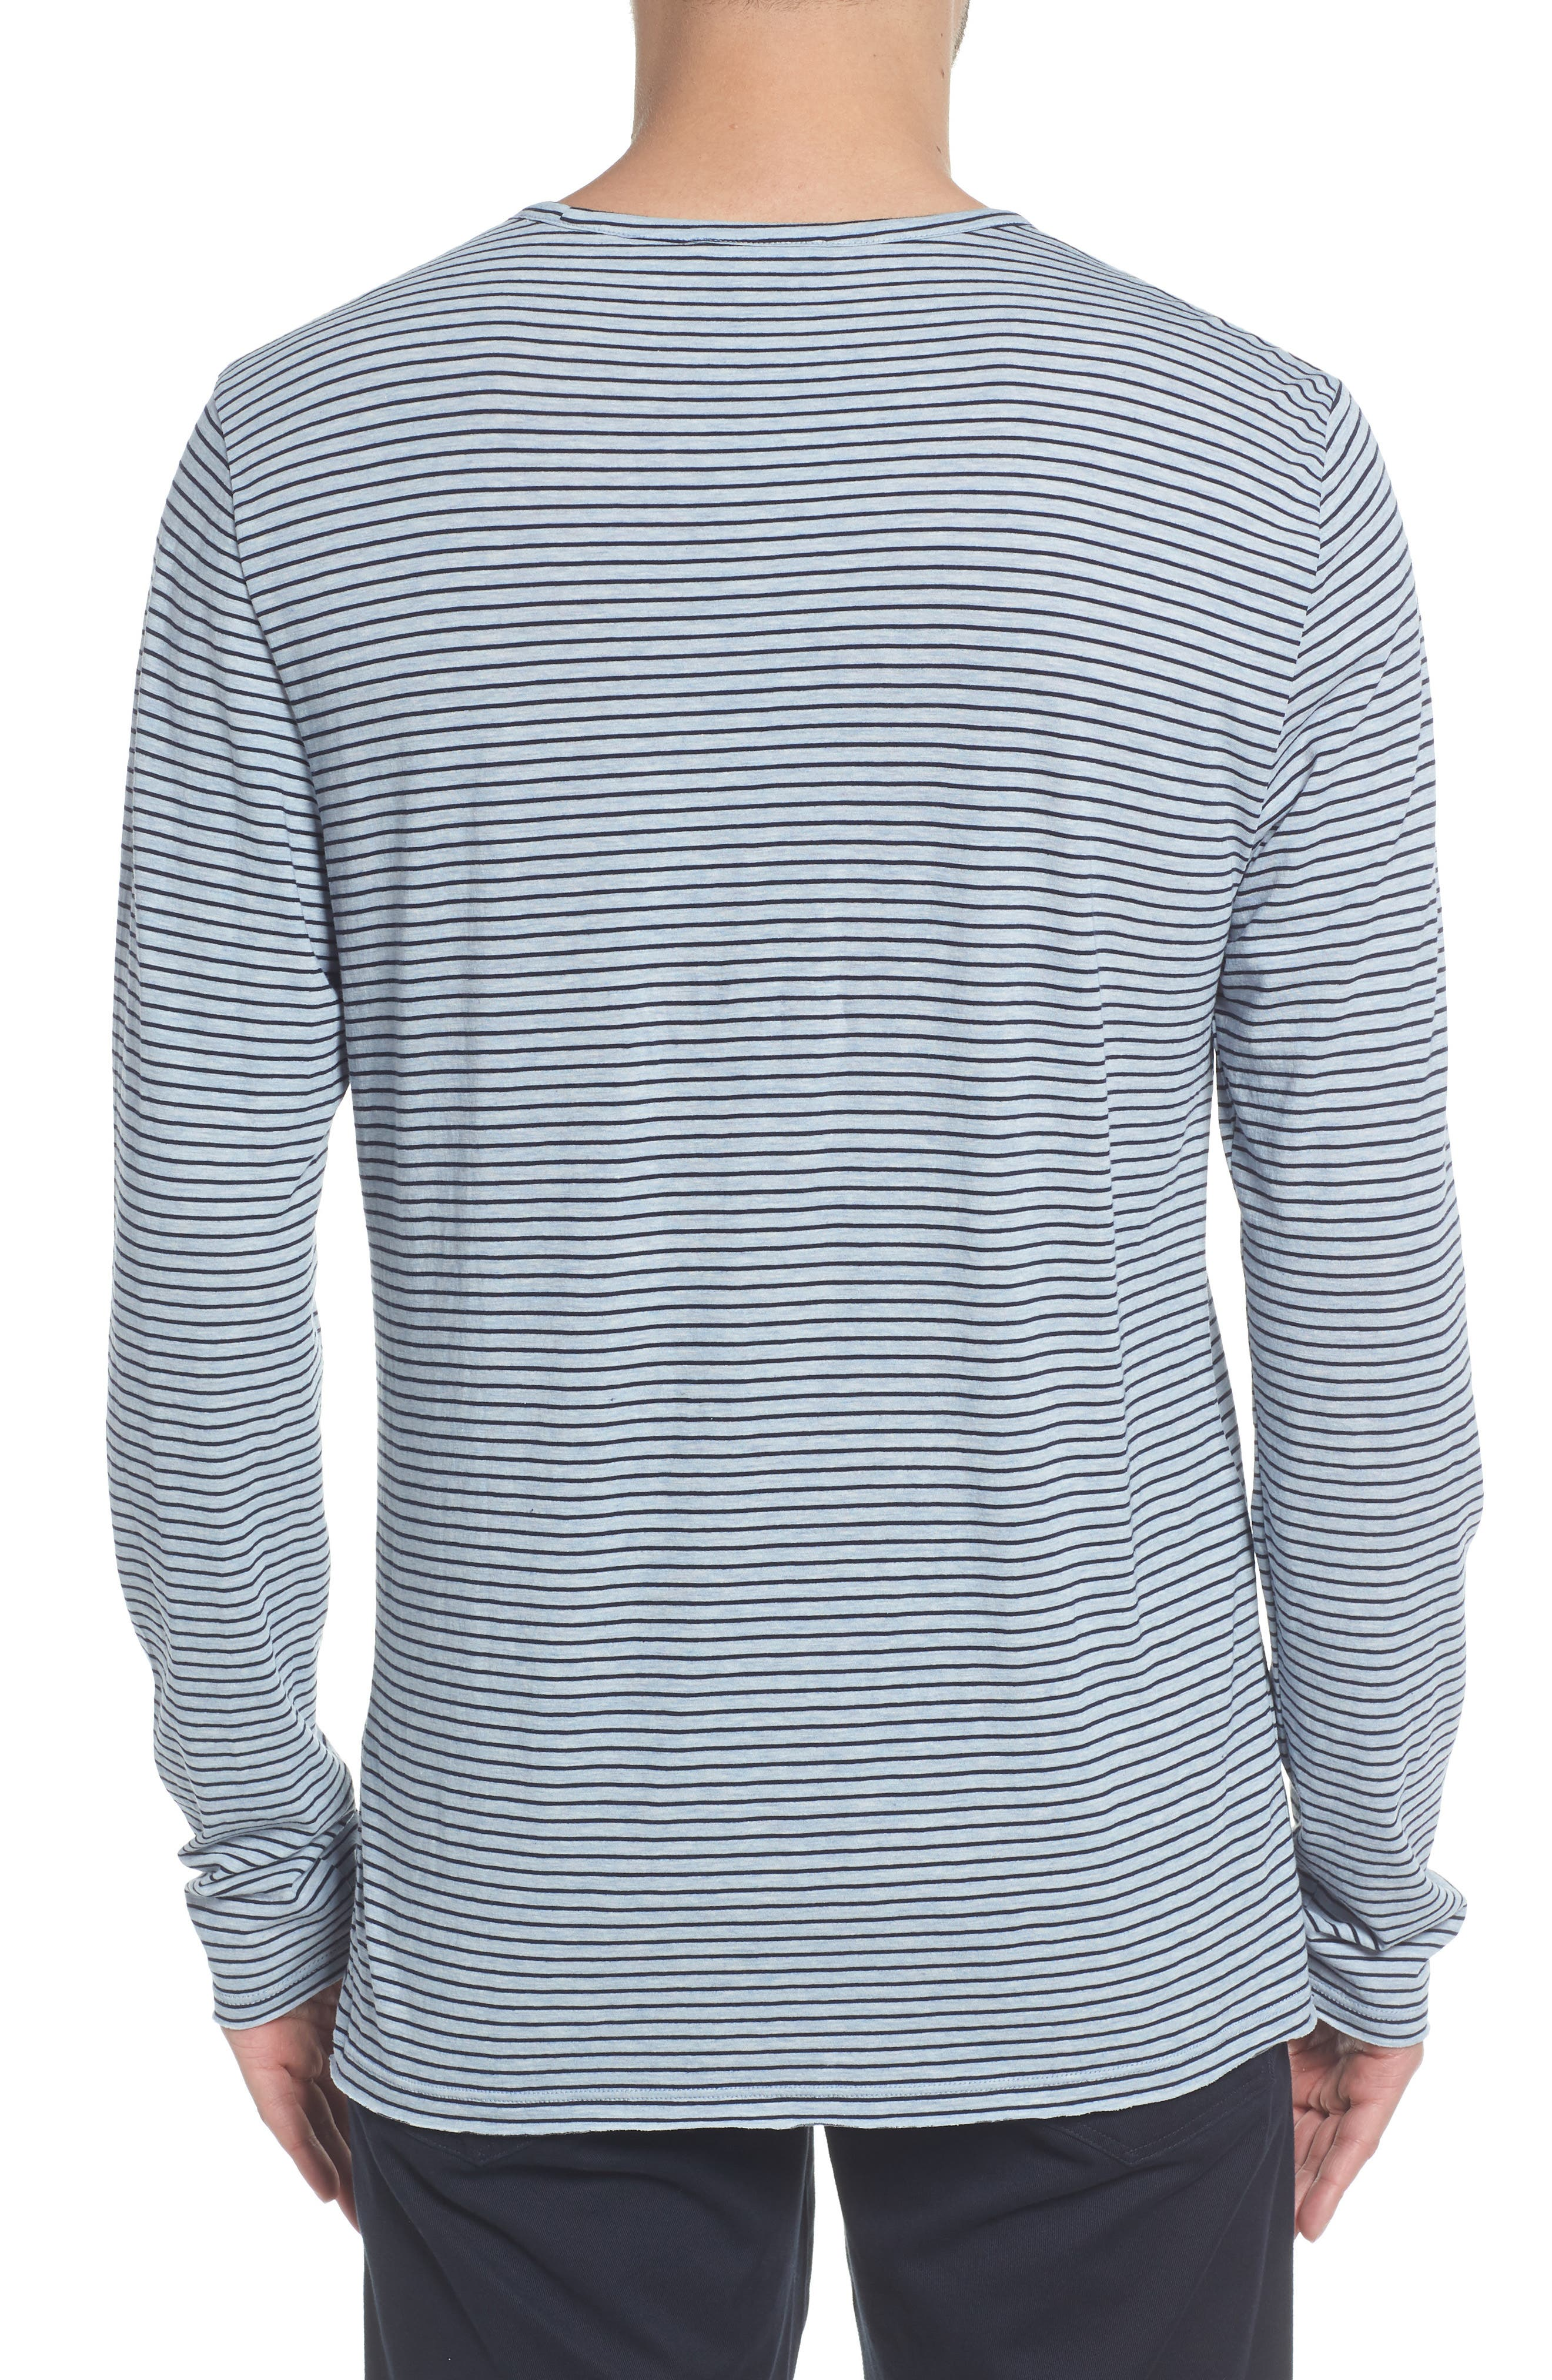 Stripe Long Sleeve Crewneck T-Shirt,                             Alternate thumbnail 2, color,                             H ARCTIC/ NEW COASTAL